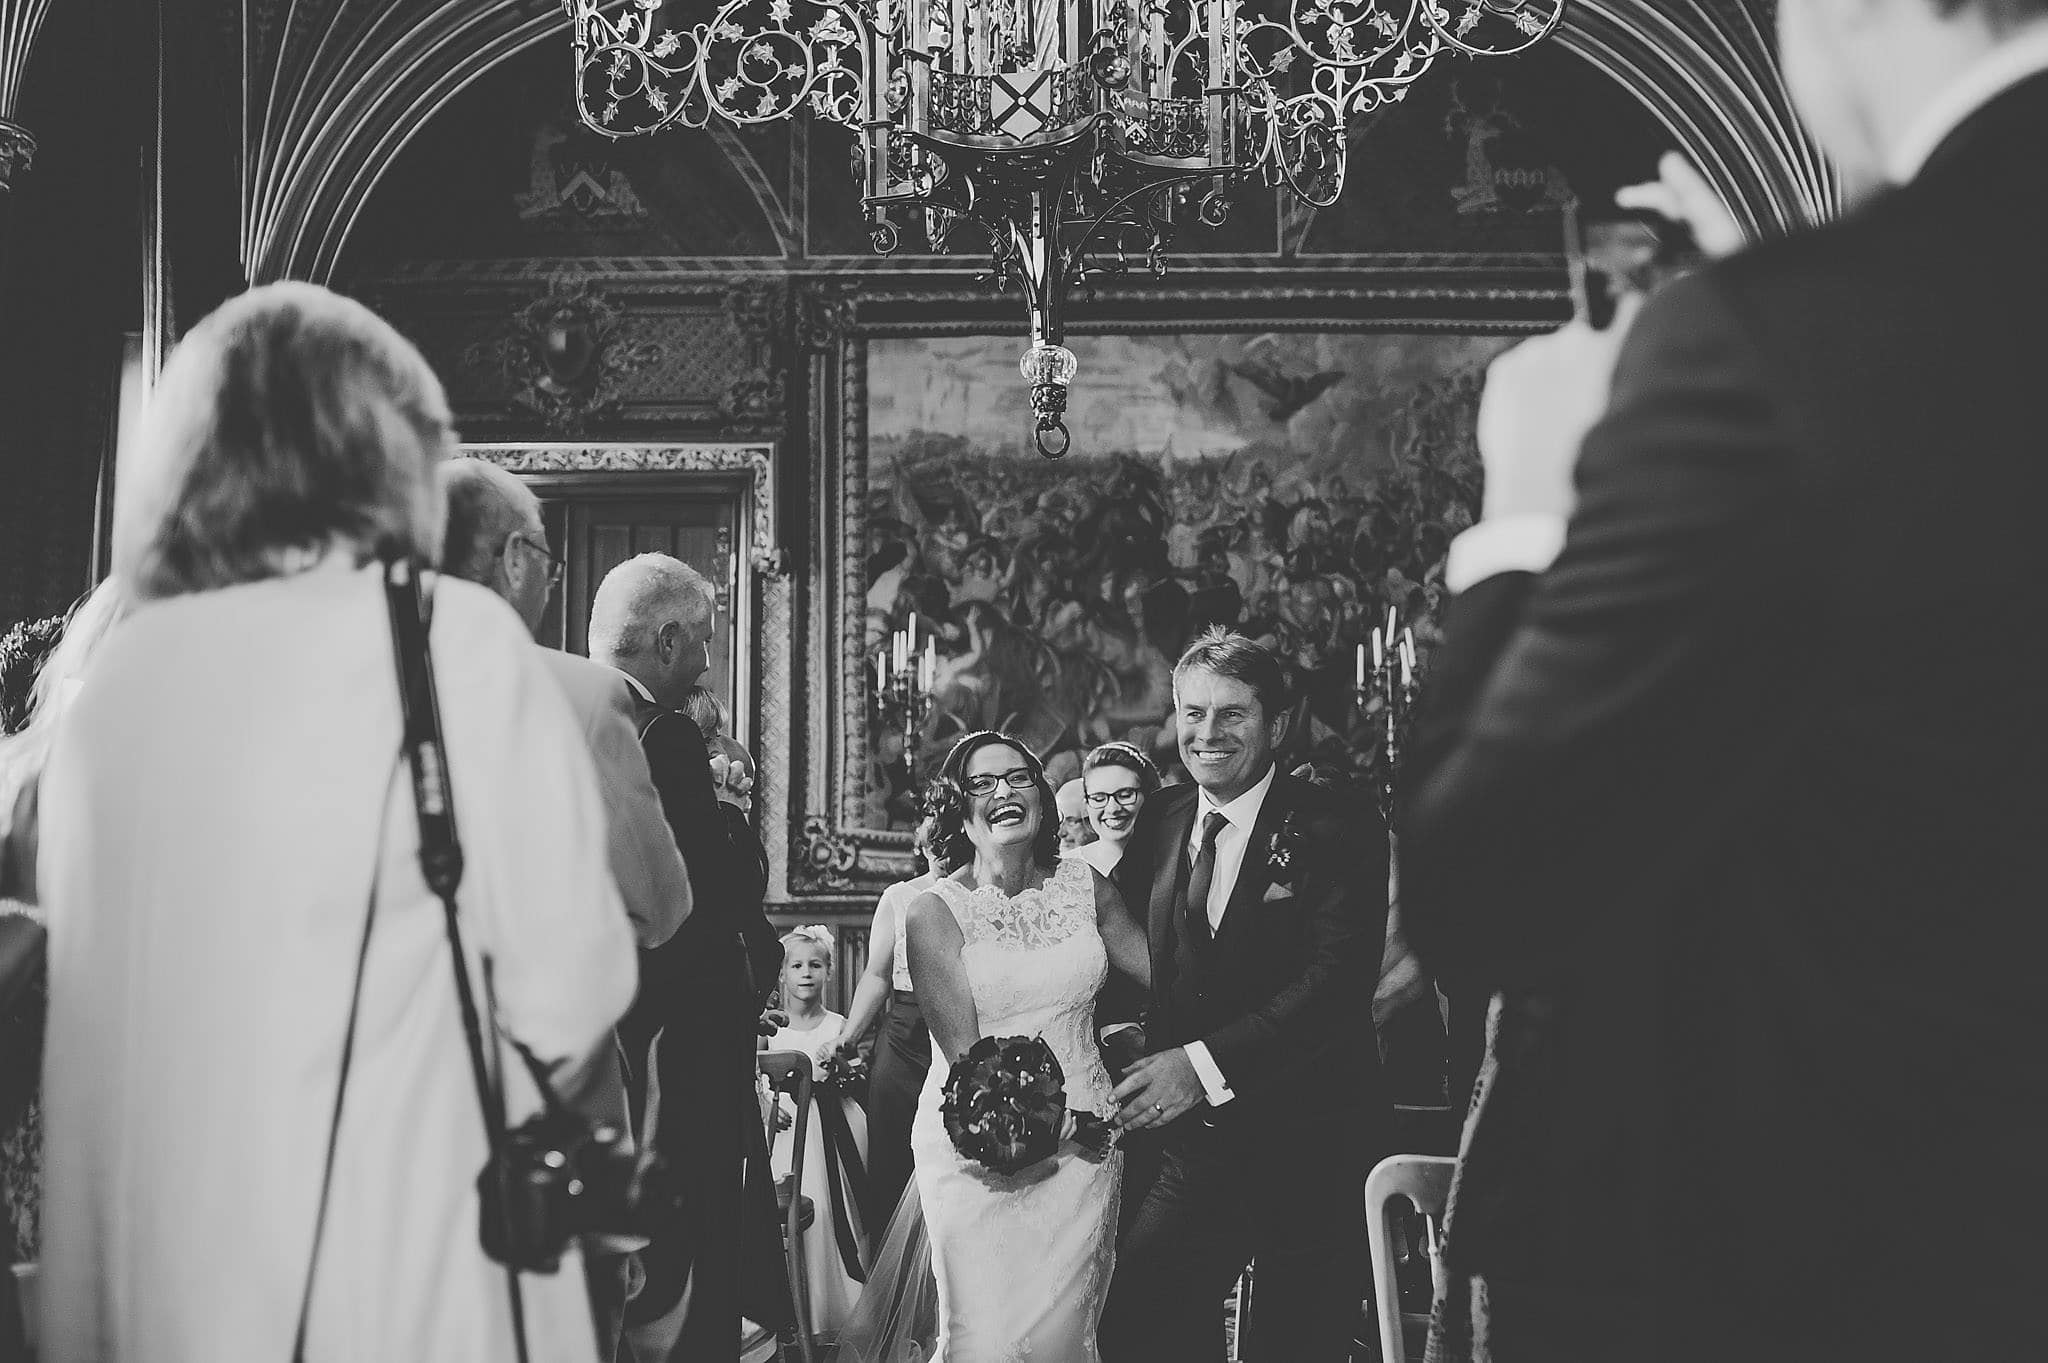 Wedding photography at Eastnor Castle in Herefordshire | Christine + Martin 1